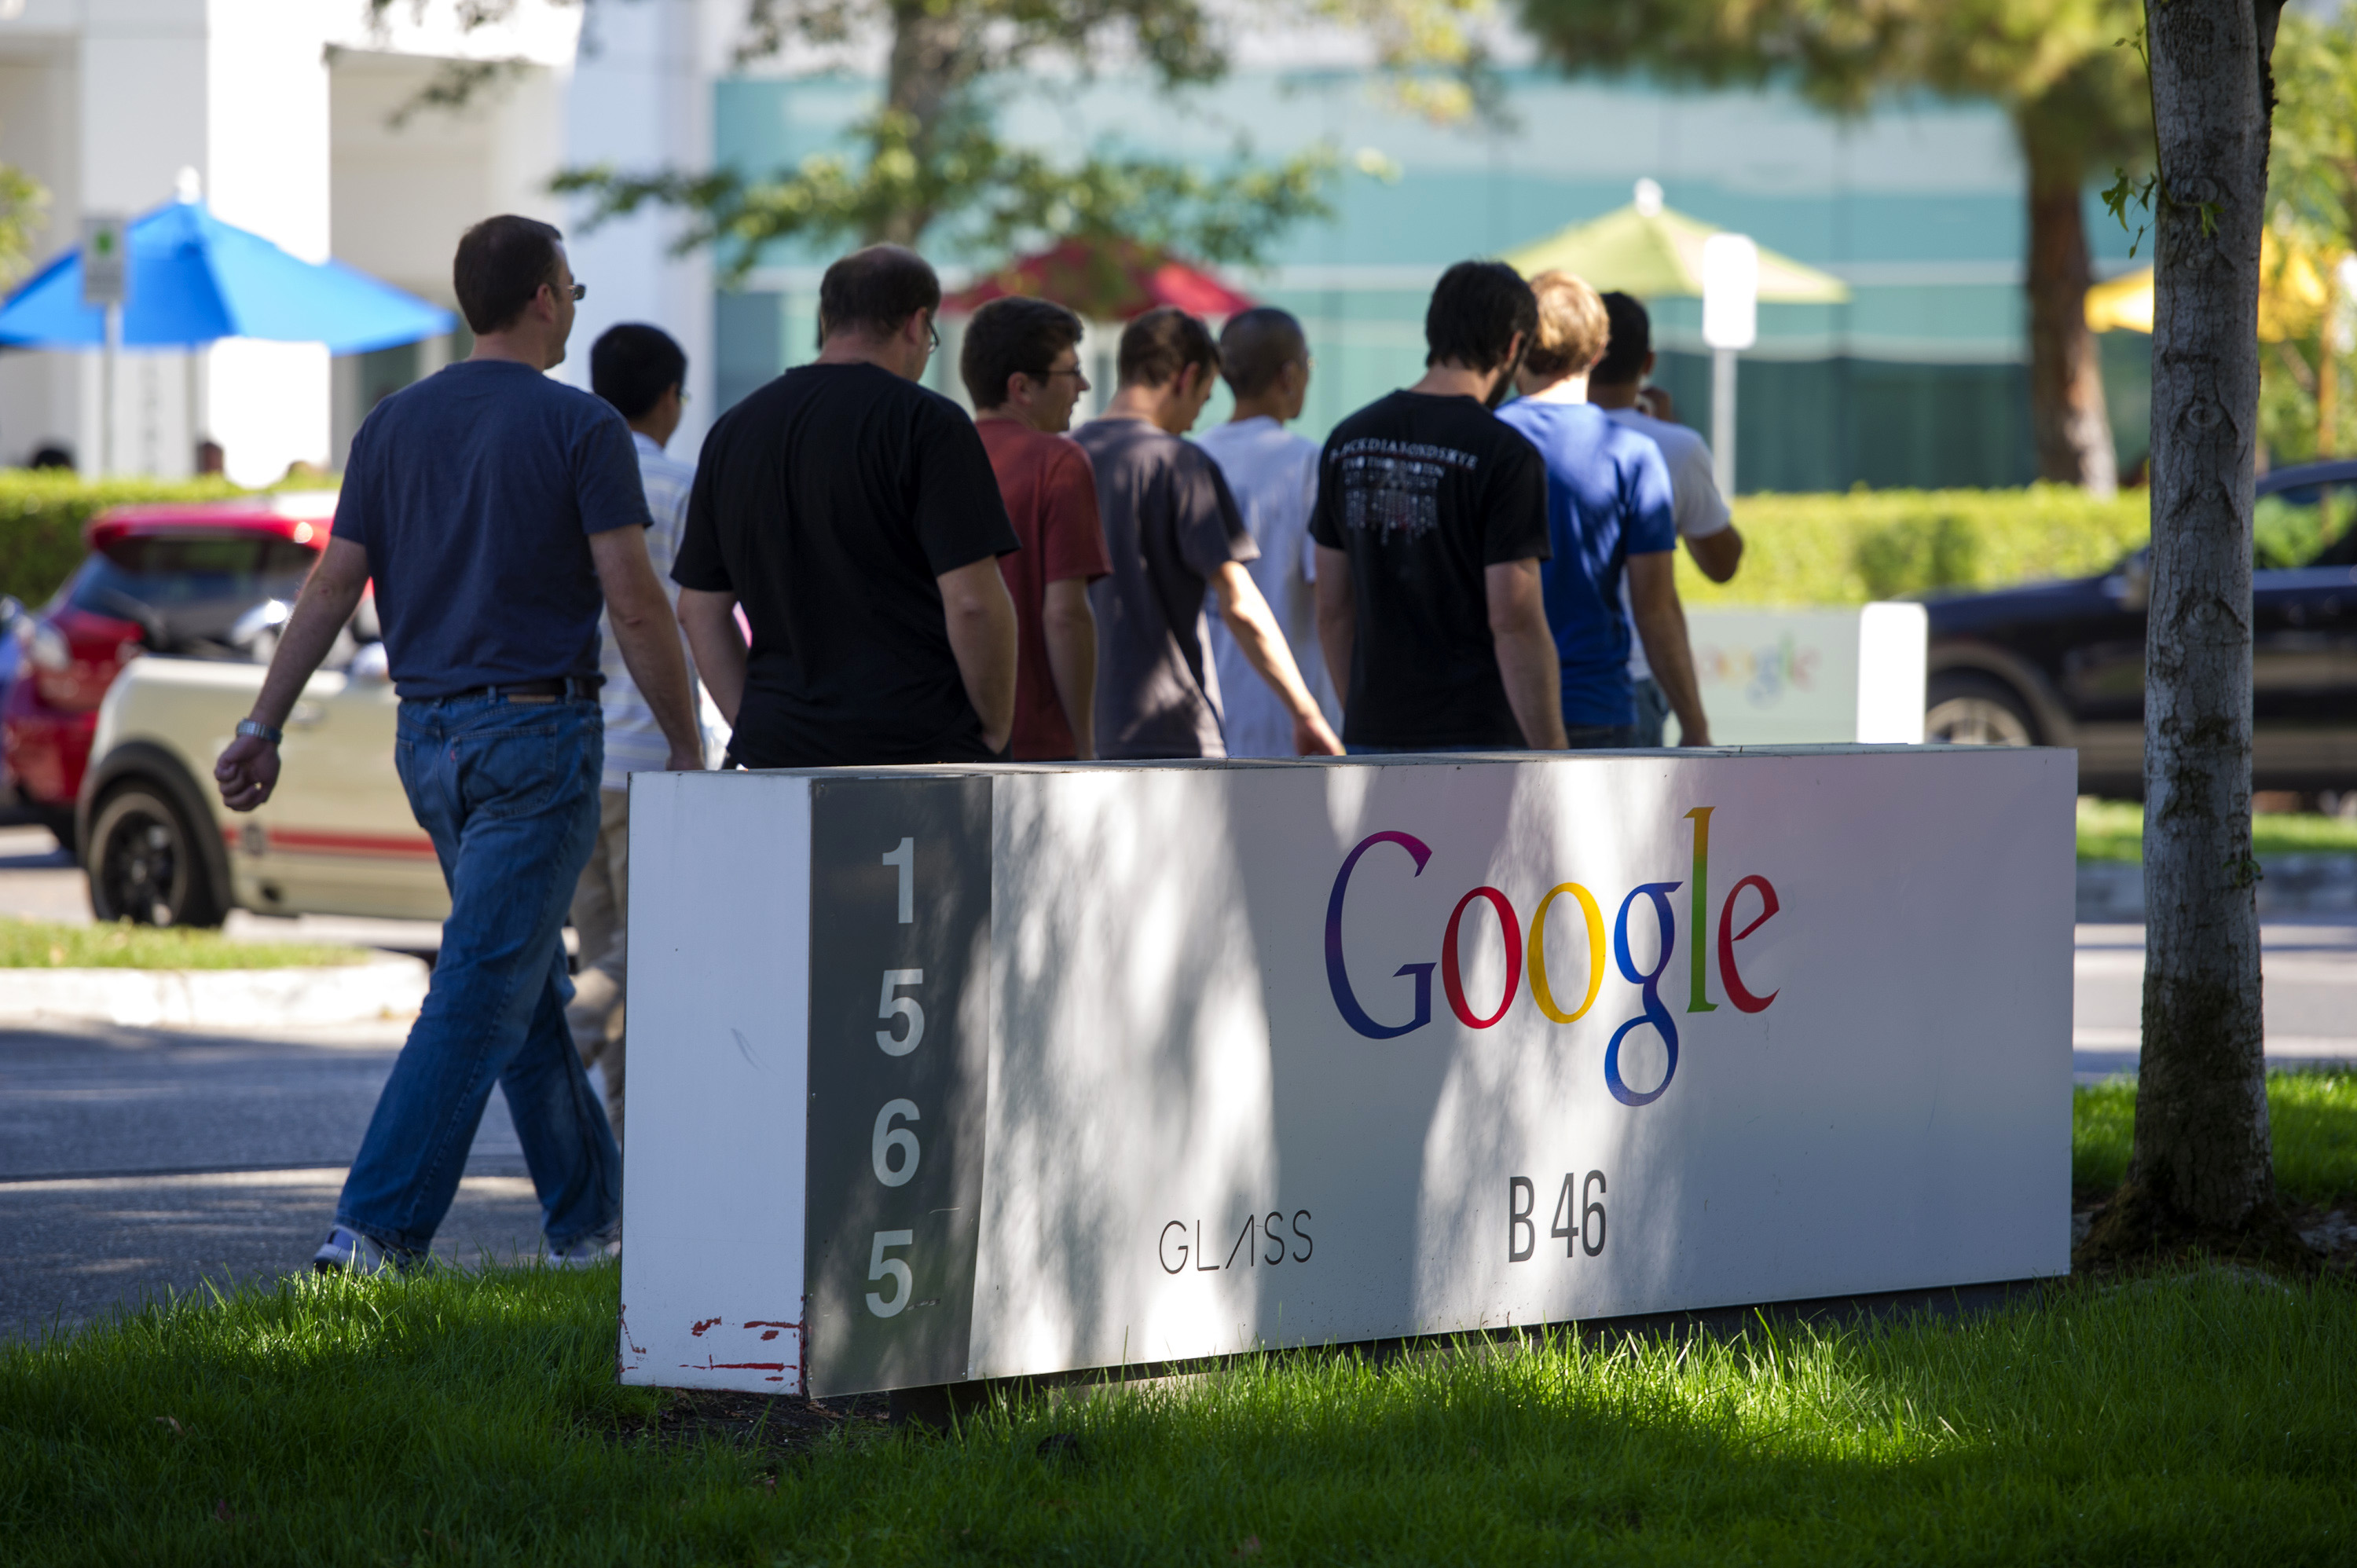 Pedestrians walk past Google Inc. signage displayed in front of the company's headquarters in Mountain View, California, U.S., on Friday, Sept. 27, 2013.